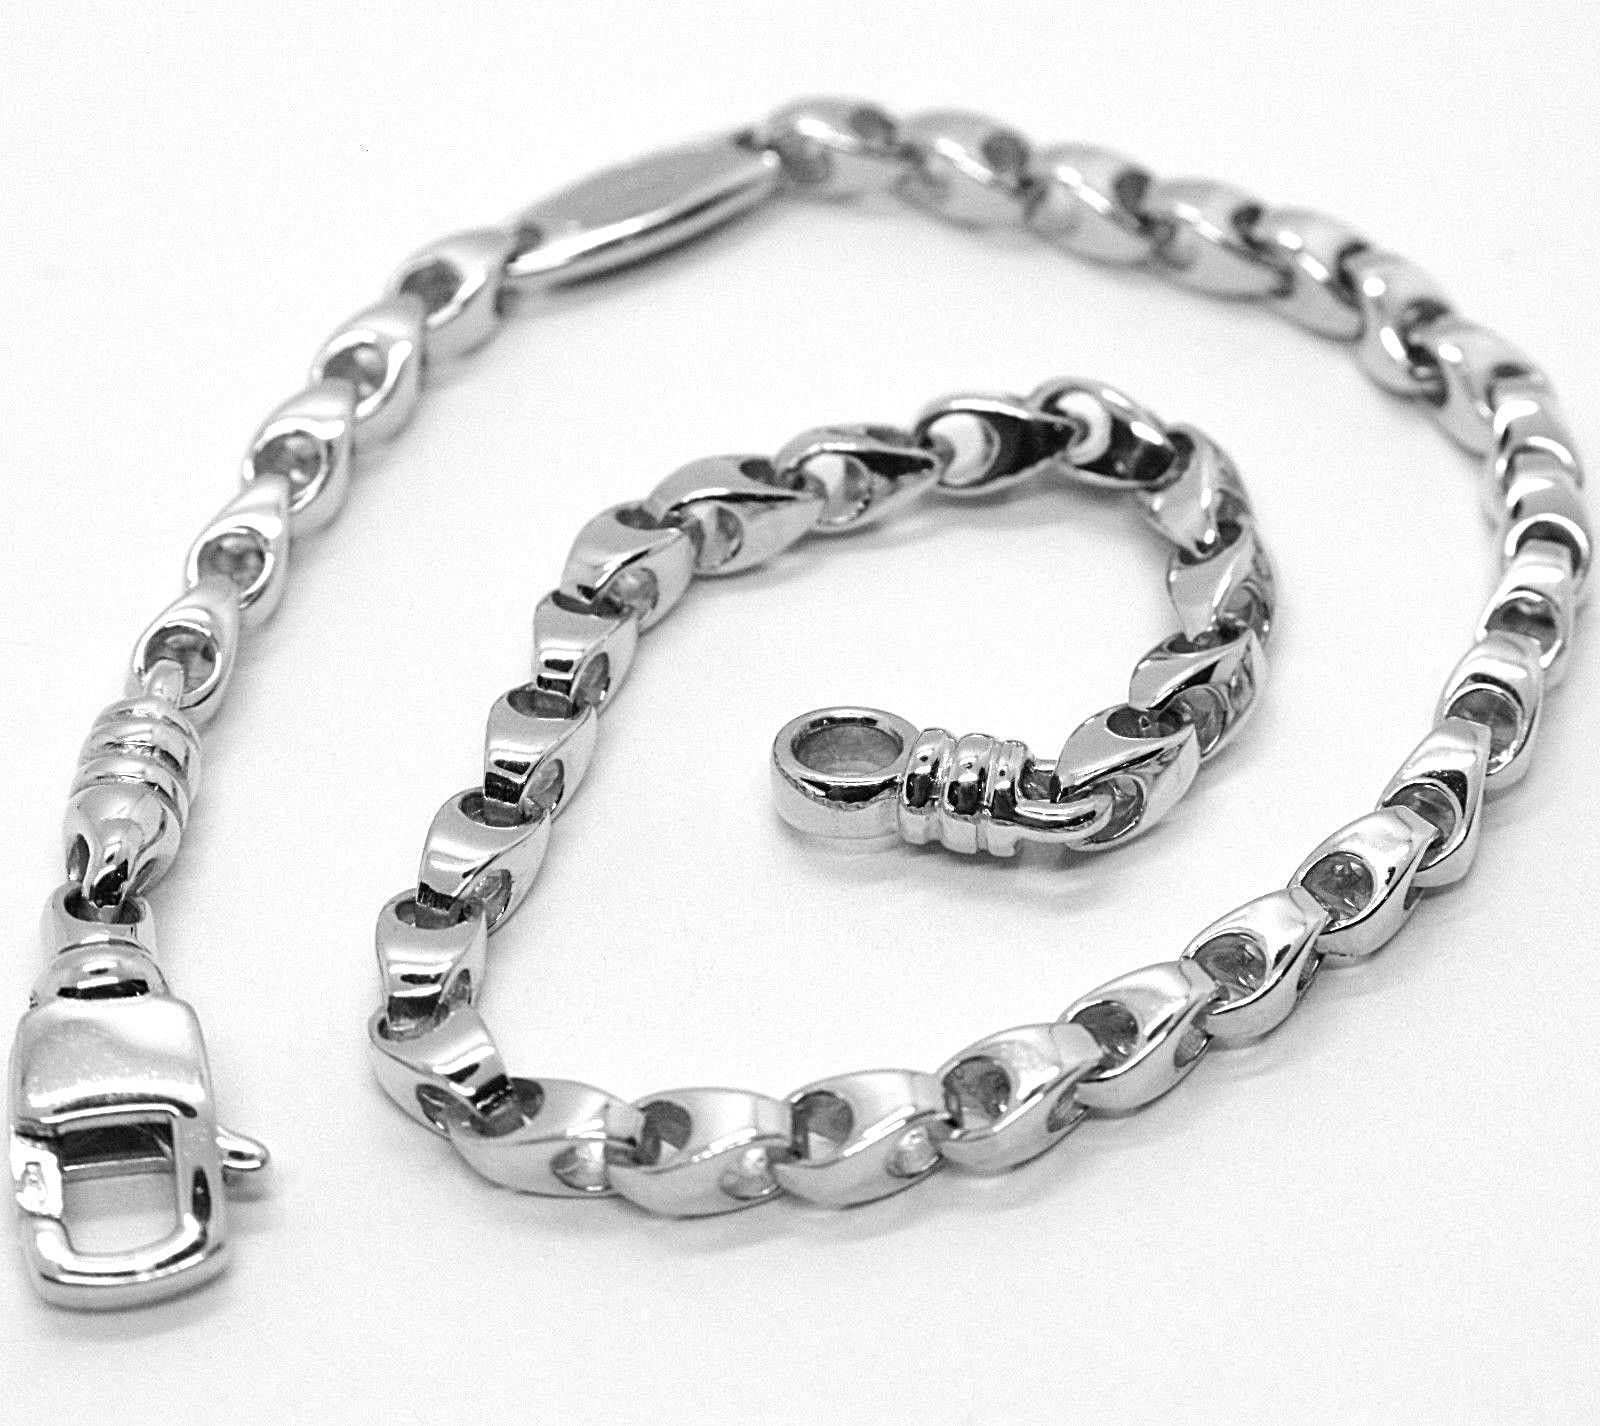 SOLID 18K WHITE GOLD BRACELET, 21 CM, 8.3 INCHES, 3 MM DROP TUBE LINK, POLISHED